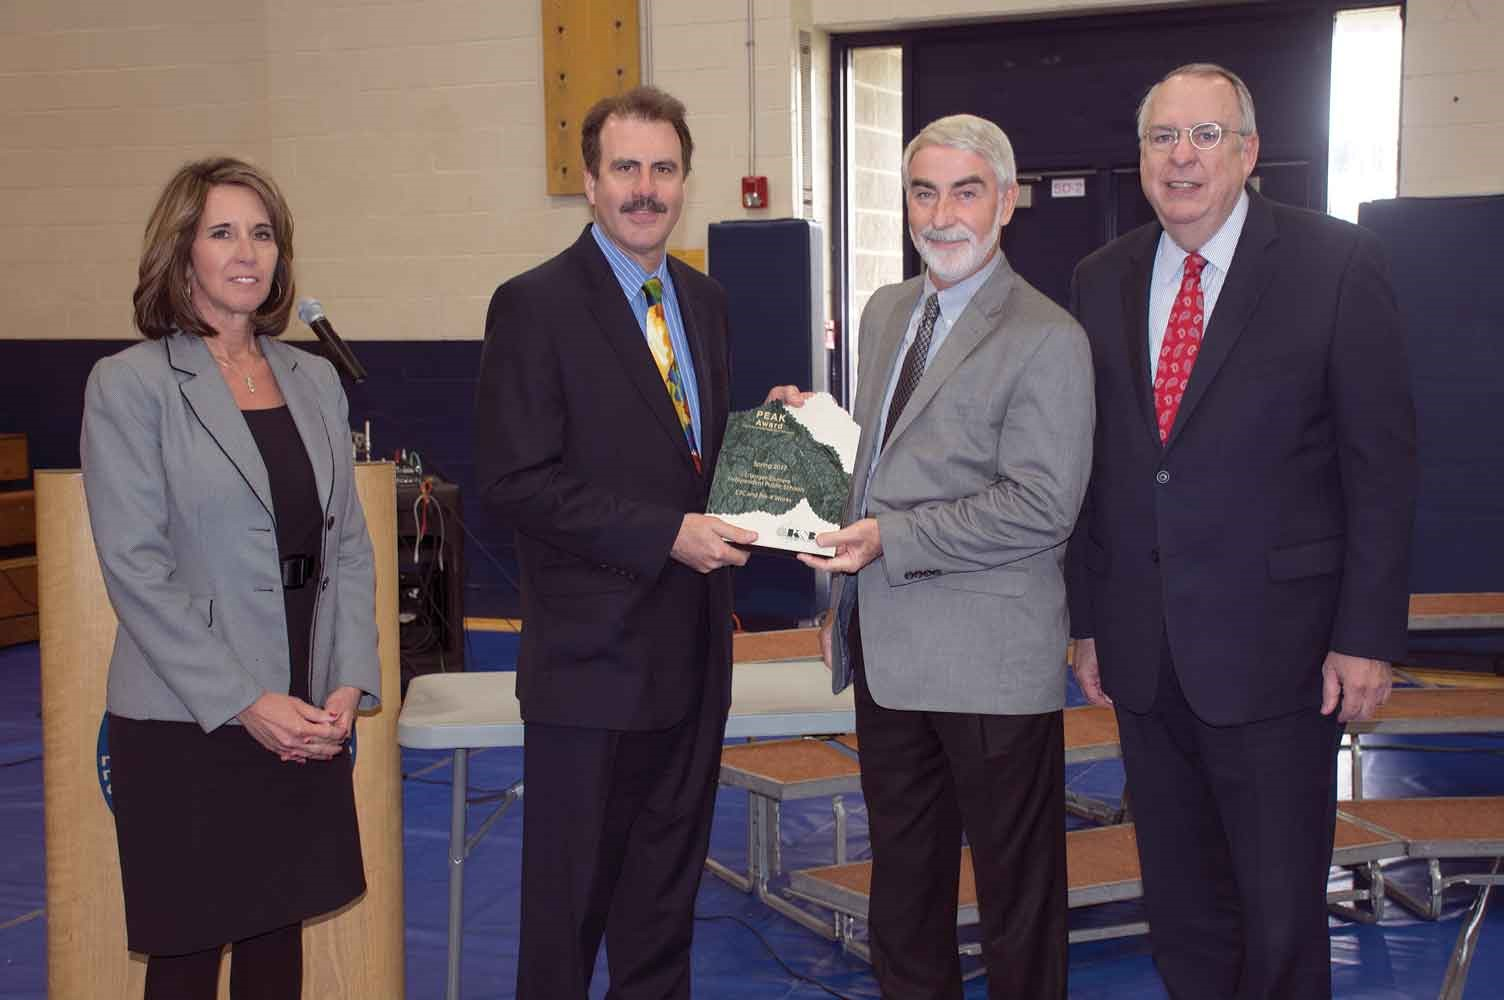 KSBA President David Webster, second from right, and KSBA Executive Director Mike Armstrong, far right, present the 2017 Spring PEAK Award to Erlanger-Elsmere School Board Chairman Tom Luken and Superintendent Dr. Kathy Burkhardt.